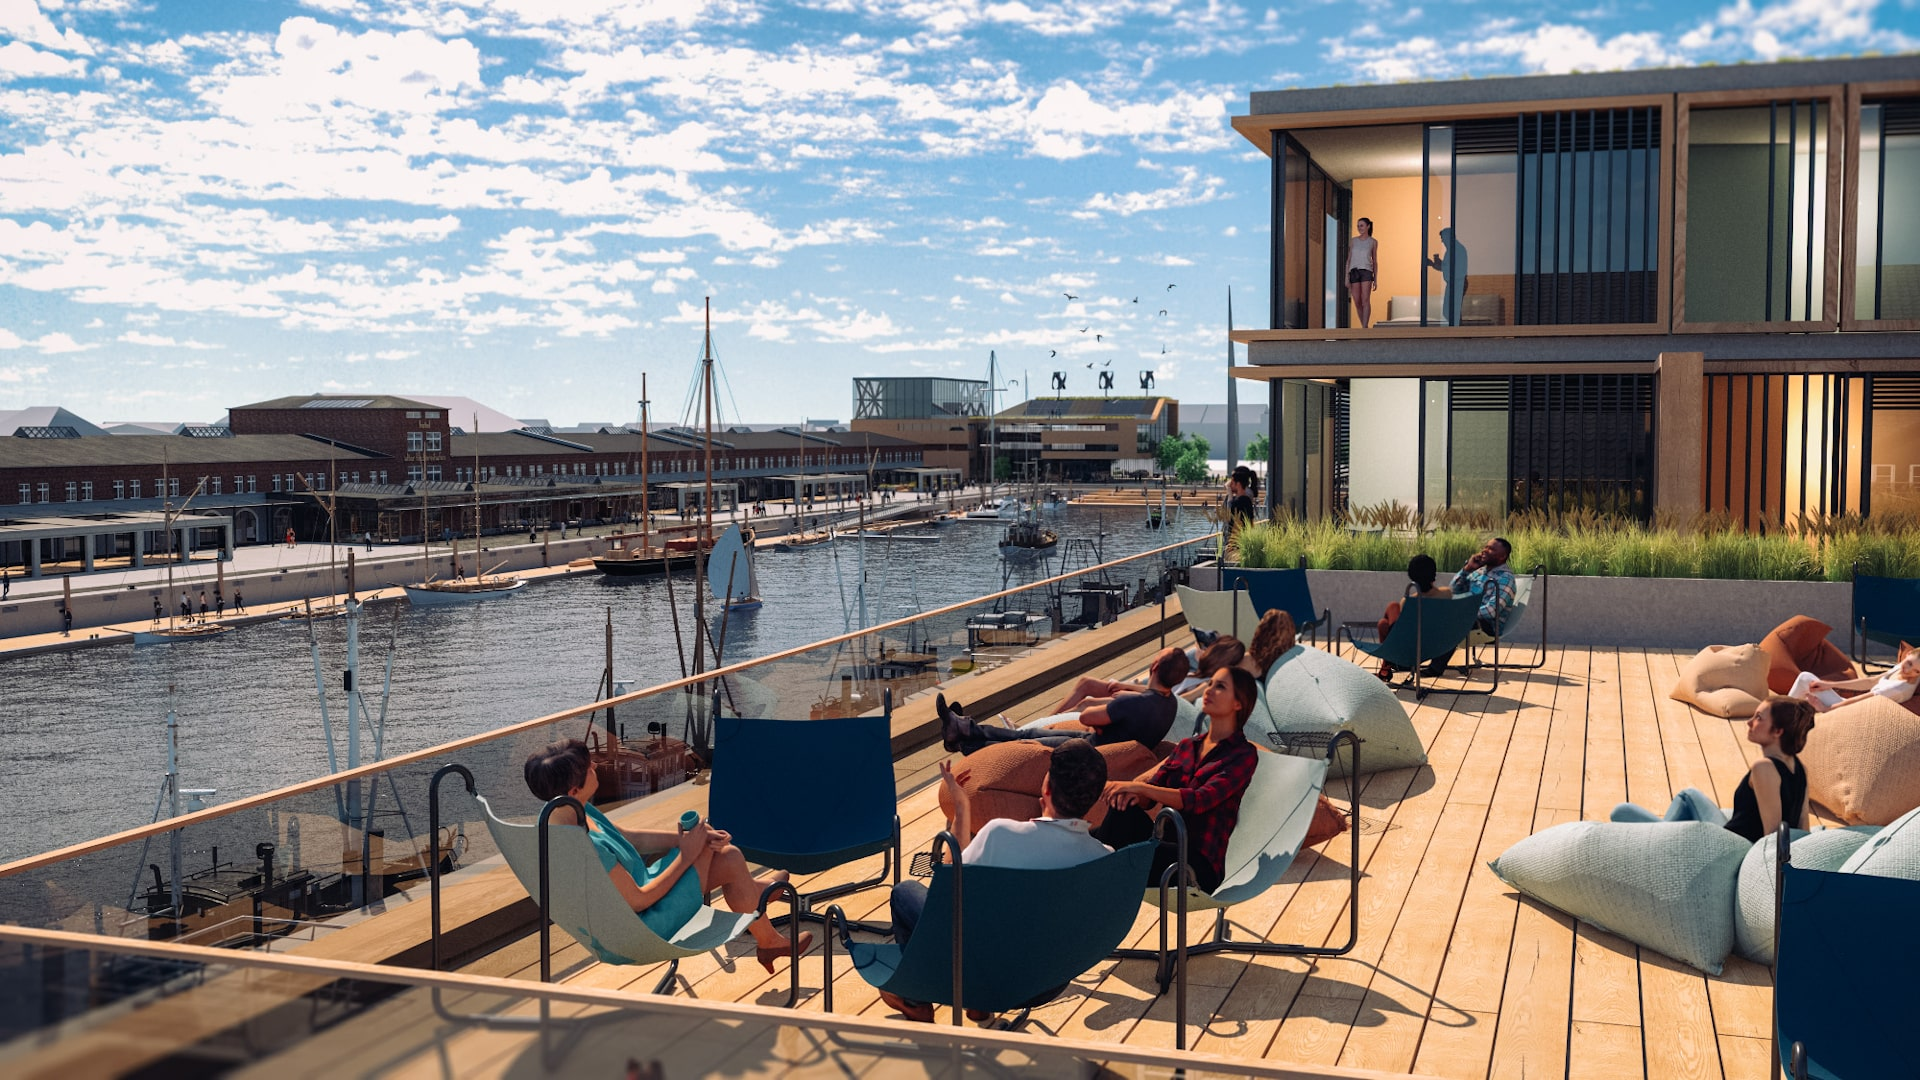 Destinationsentwicklung Quartier Alter Fischereihafen Cuxhaven Terrasse Going Places